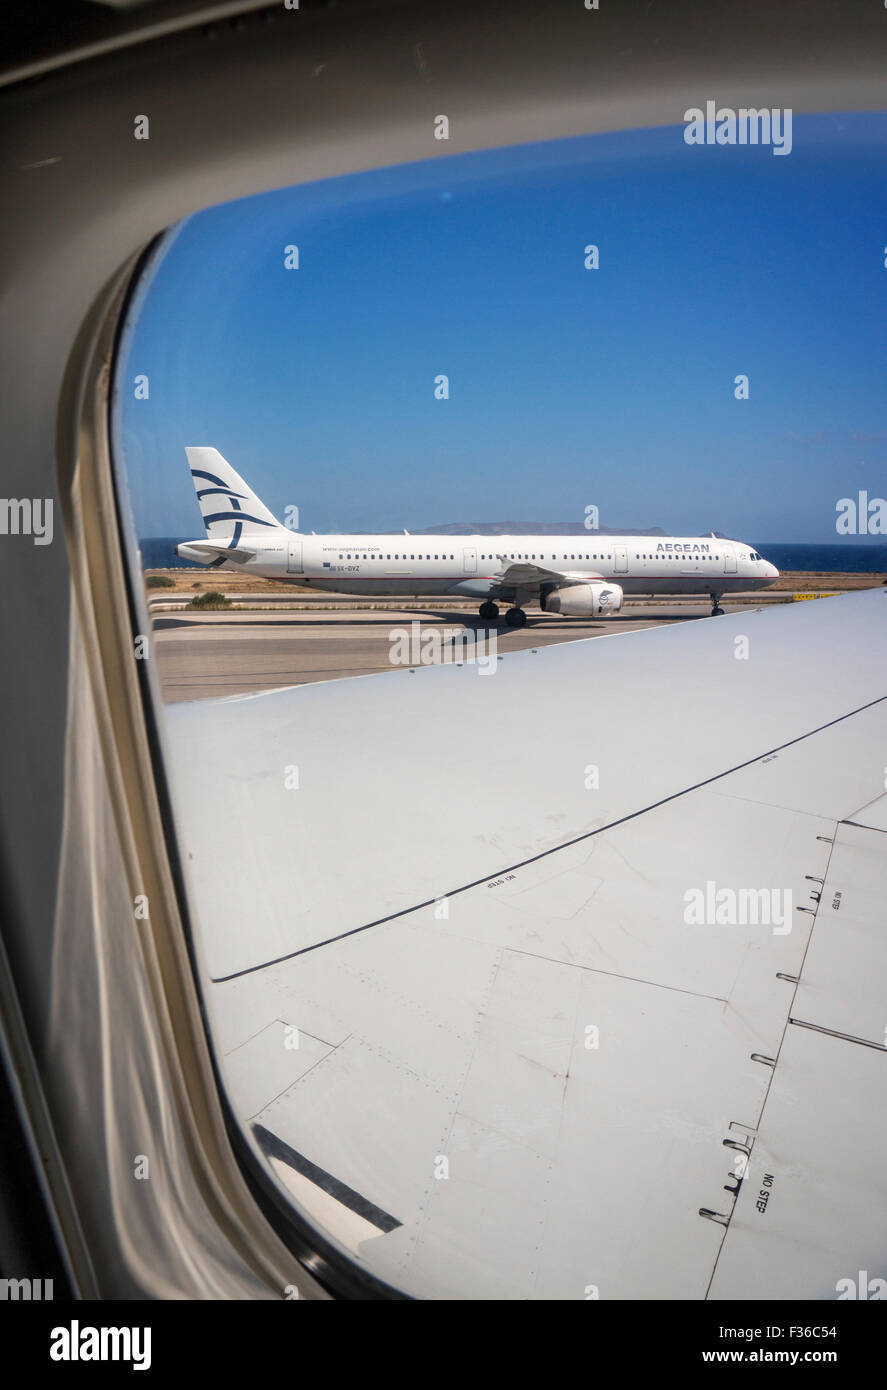 An aircraft of the airline Aegean at the airport Heraklion in Crete. View from the cabin of another airliner. - Stock Image